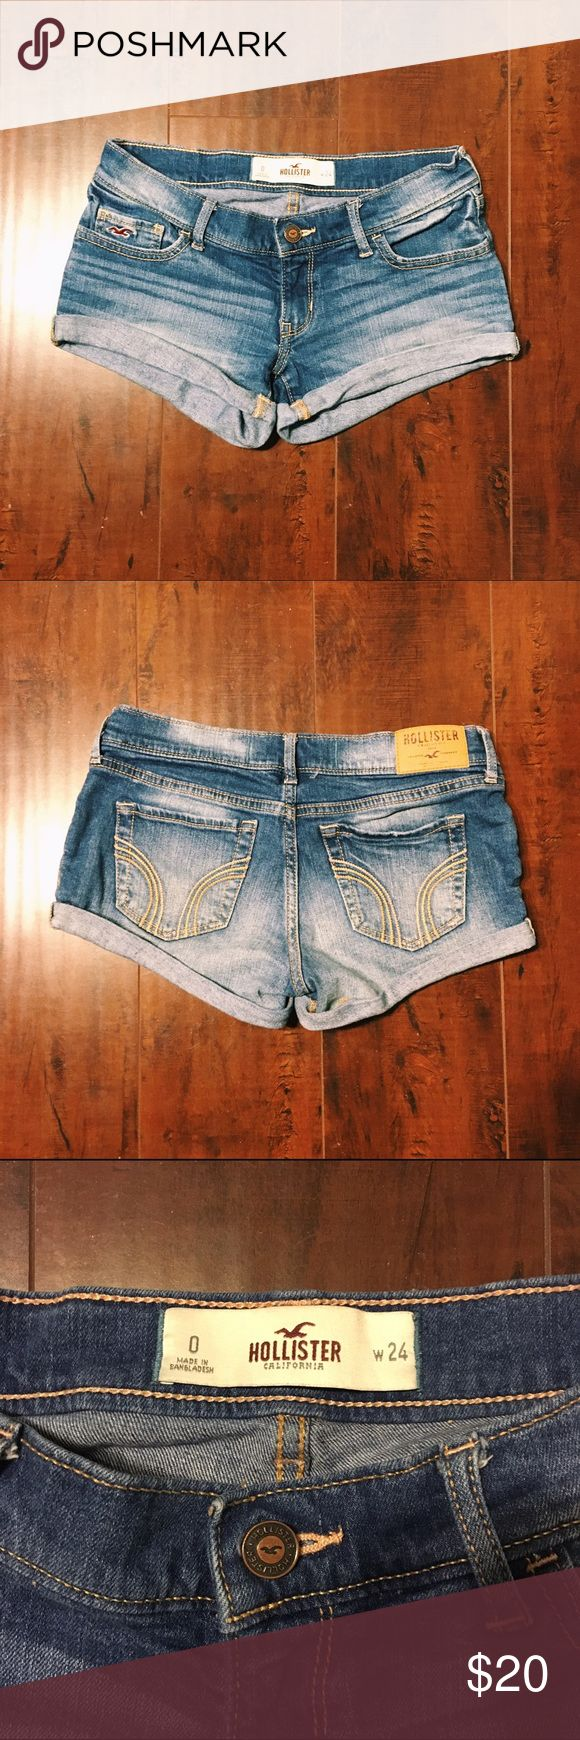 HOLLISTER SHORTS SIZE 0 I'm selling a pair of size 0 light wash Hollister shorts. Feel free to comment with any questions and bundle to save! Thanks for looking!  Hollister Shorts Jean Shorts